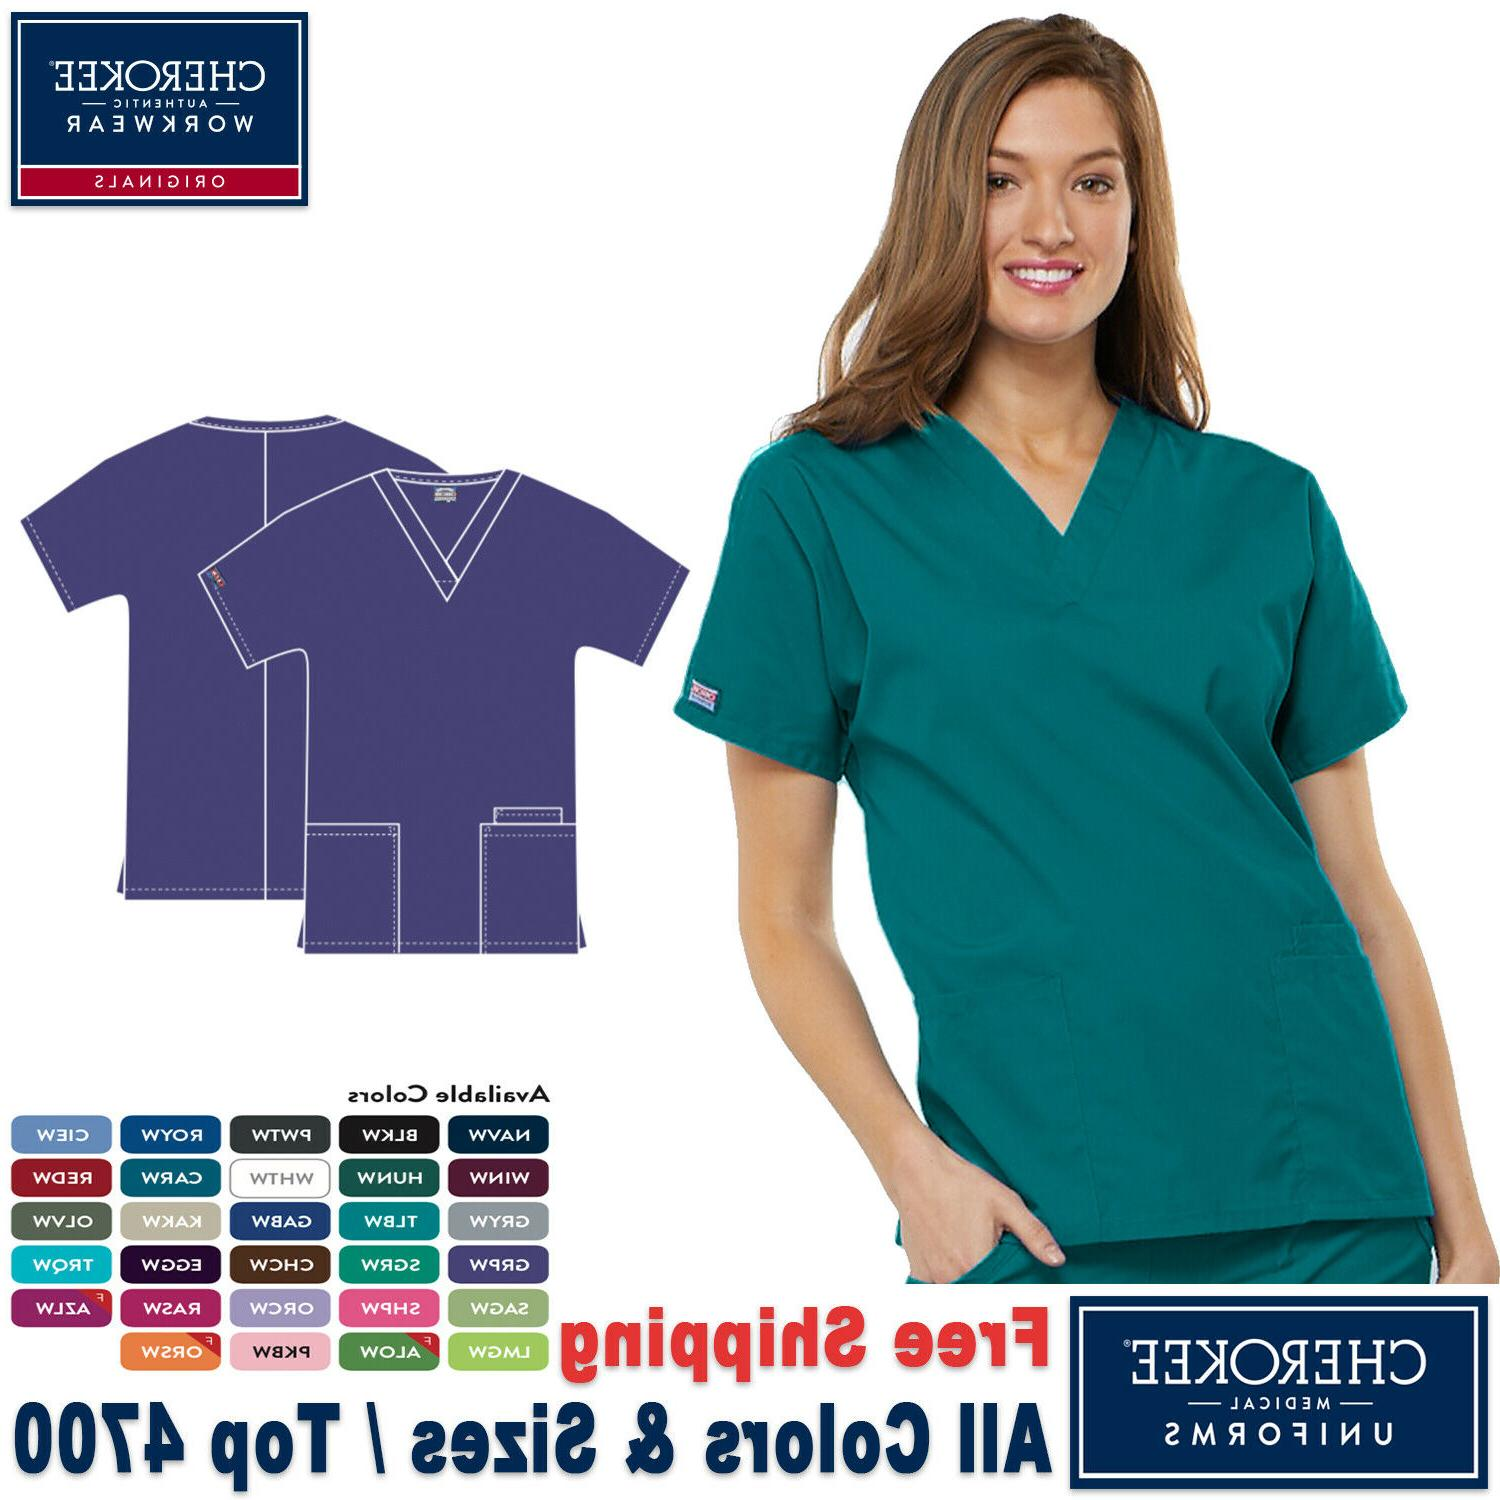 Cherokee Scrubs ORIGINALS Women's Medical Classic Fit V-Neck